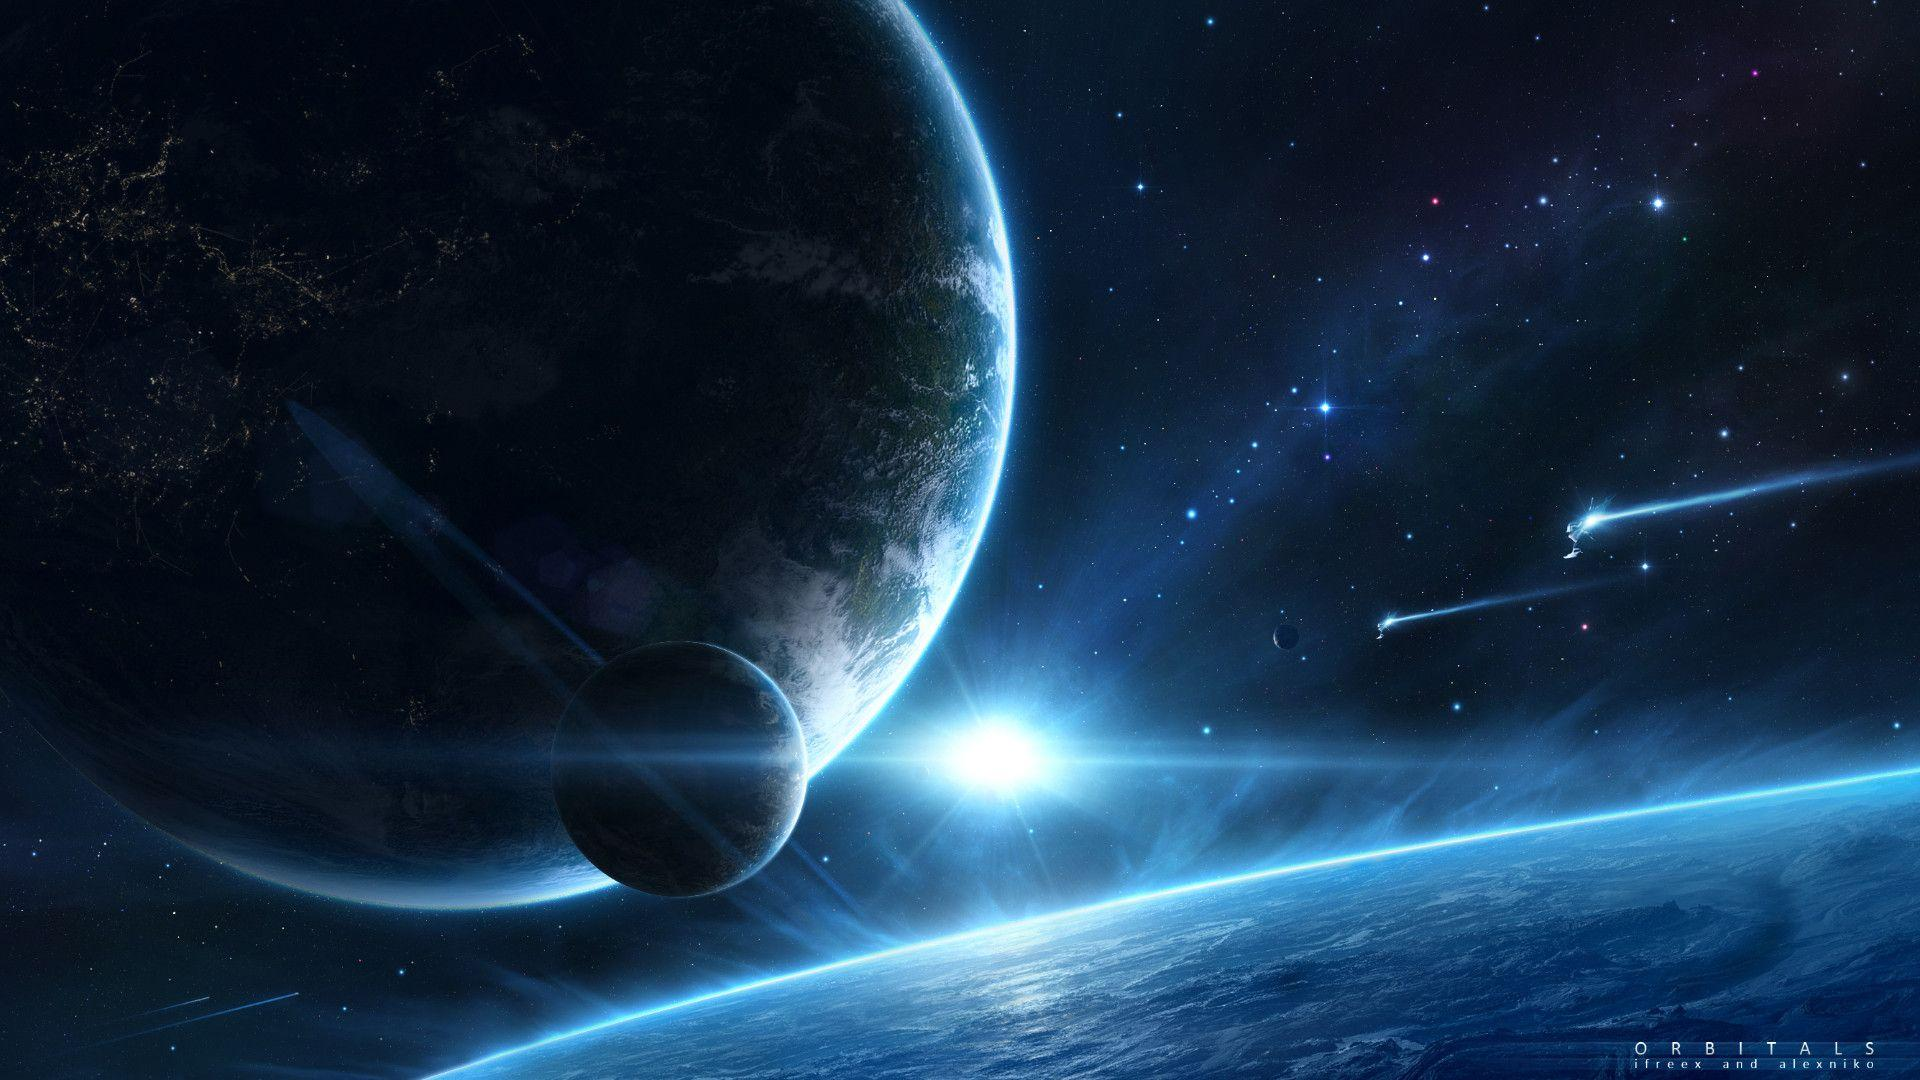 High Definition Wallpapers 1920x1080 Wallpaper Cave Solar system digital wallpaper, space, earth, sun, planets, universe. high definition wallpapers 1920x1080